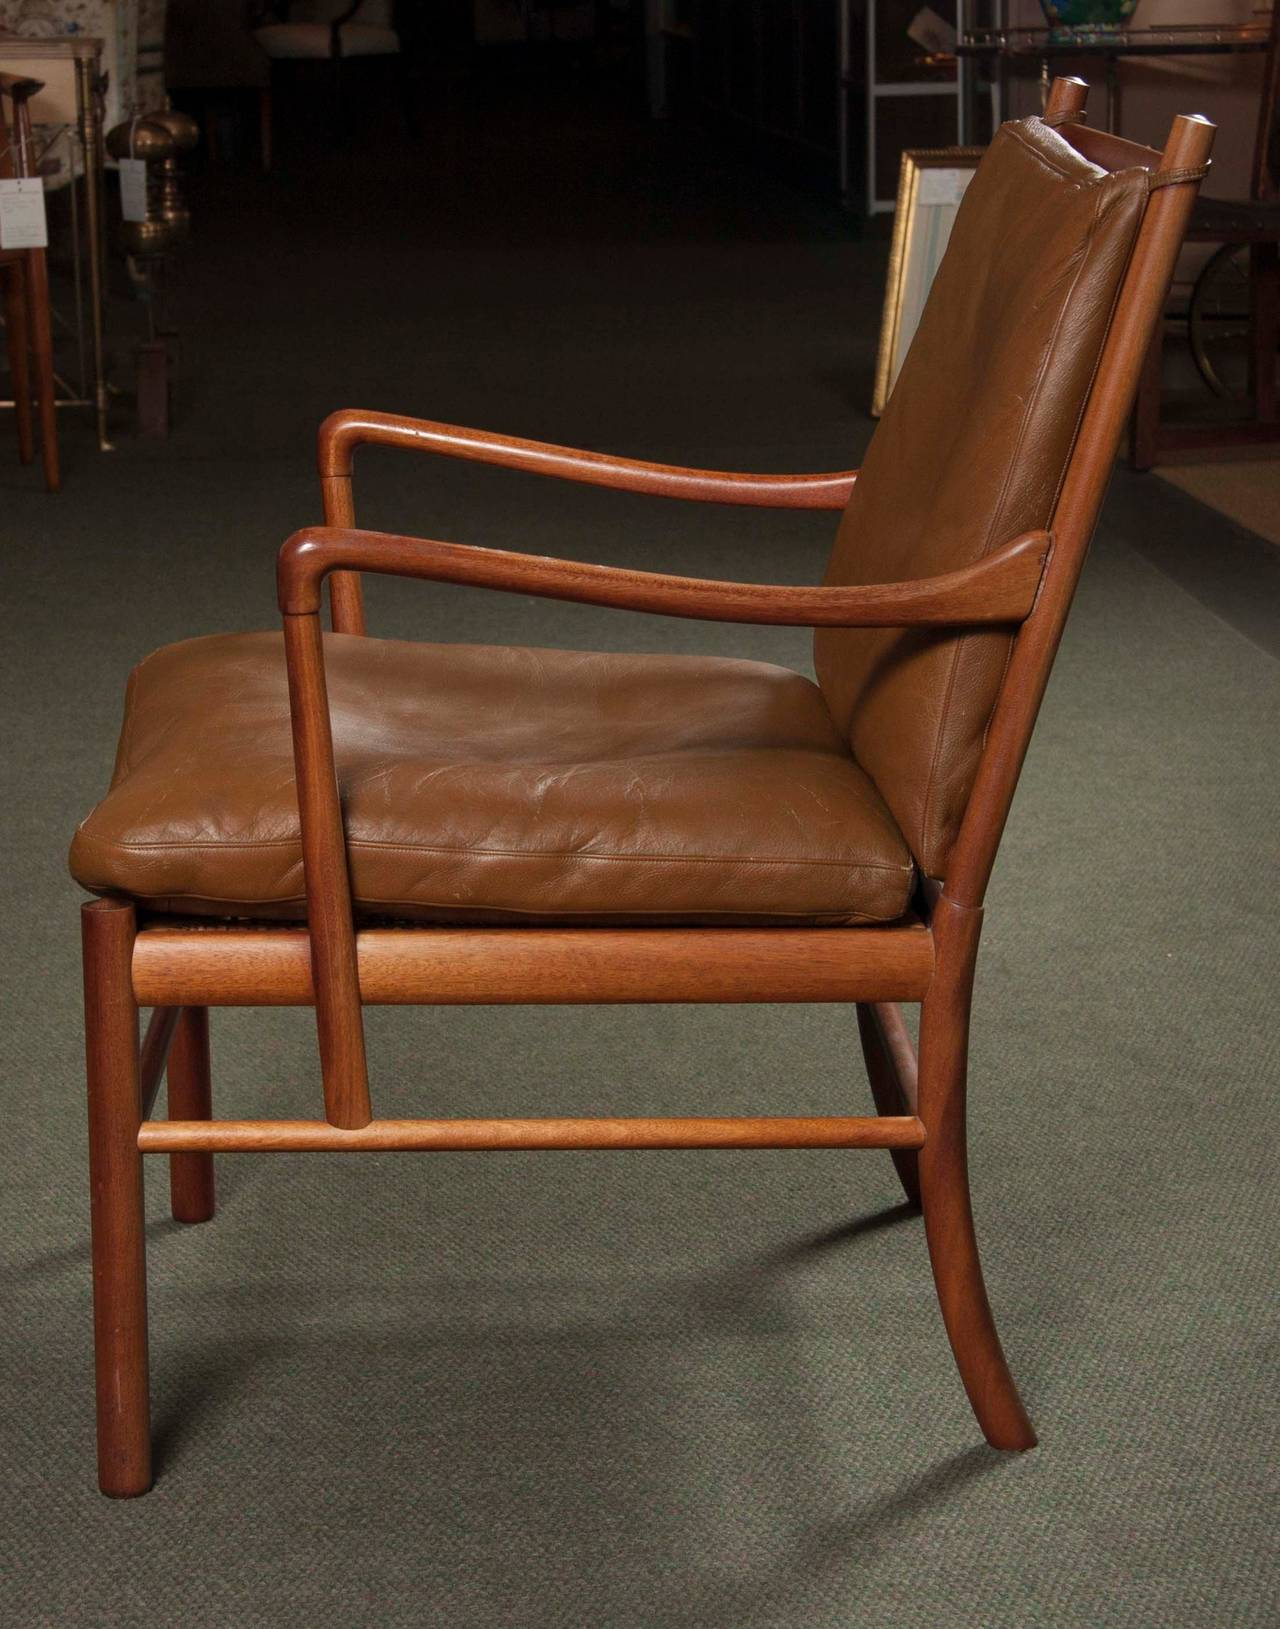 Ole Wanscher Rosewood Colonial Chair OW 149 at 1stdibs